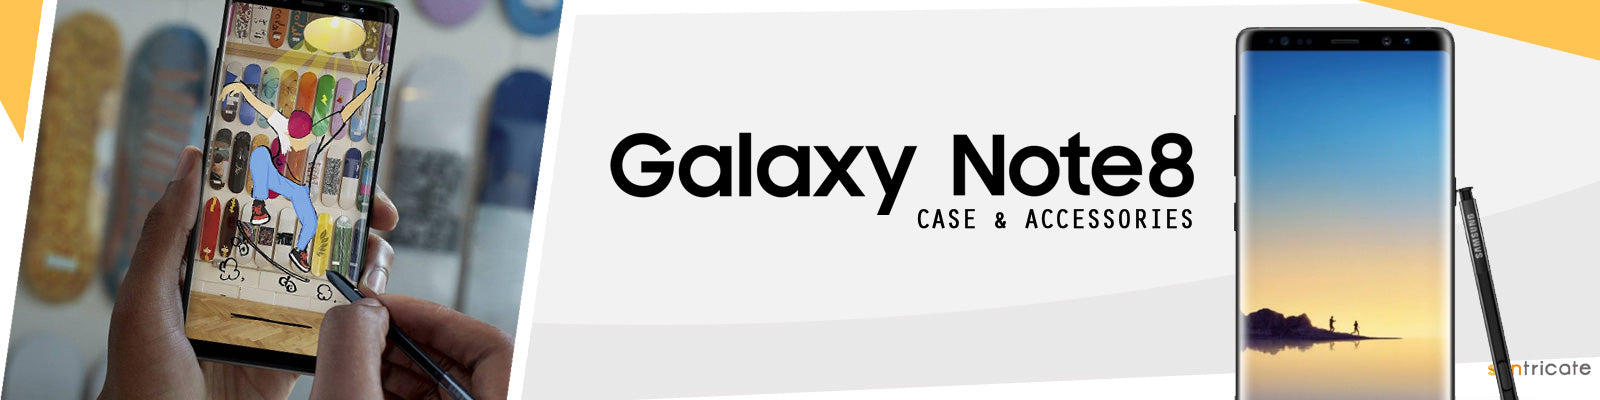 Samsung Galaxy Note 8 Case and accessories. Otterbox, speck, incipio and more.